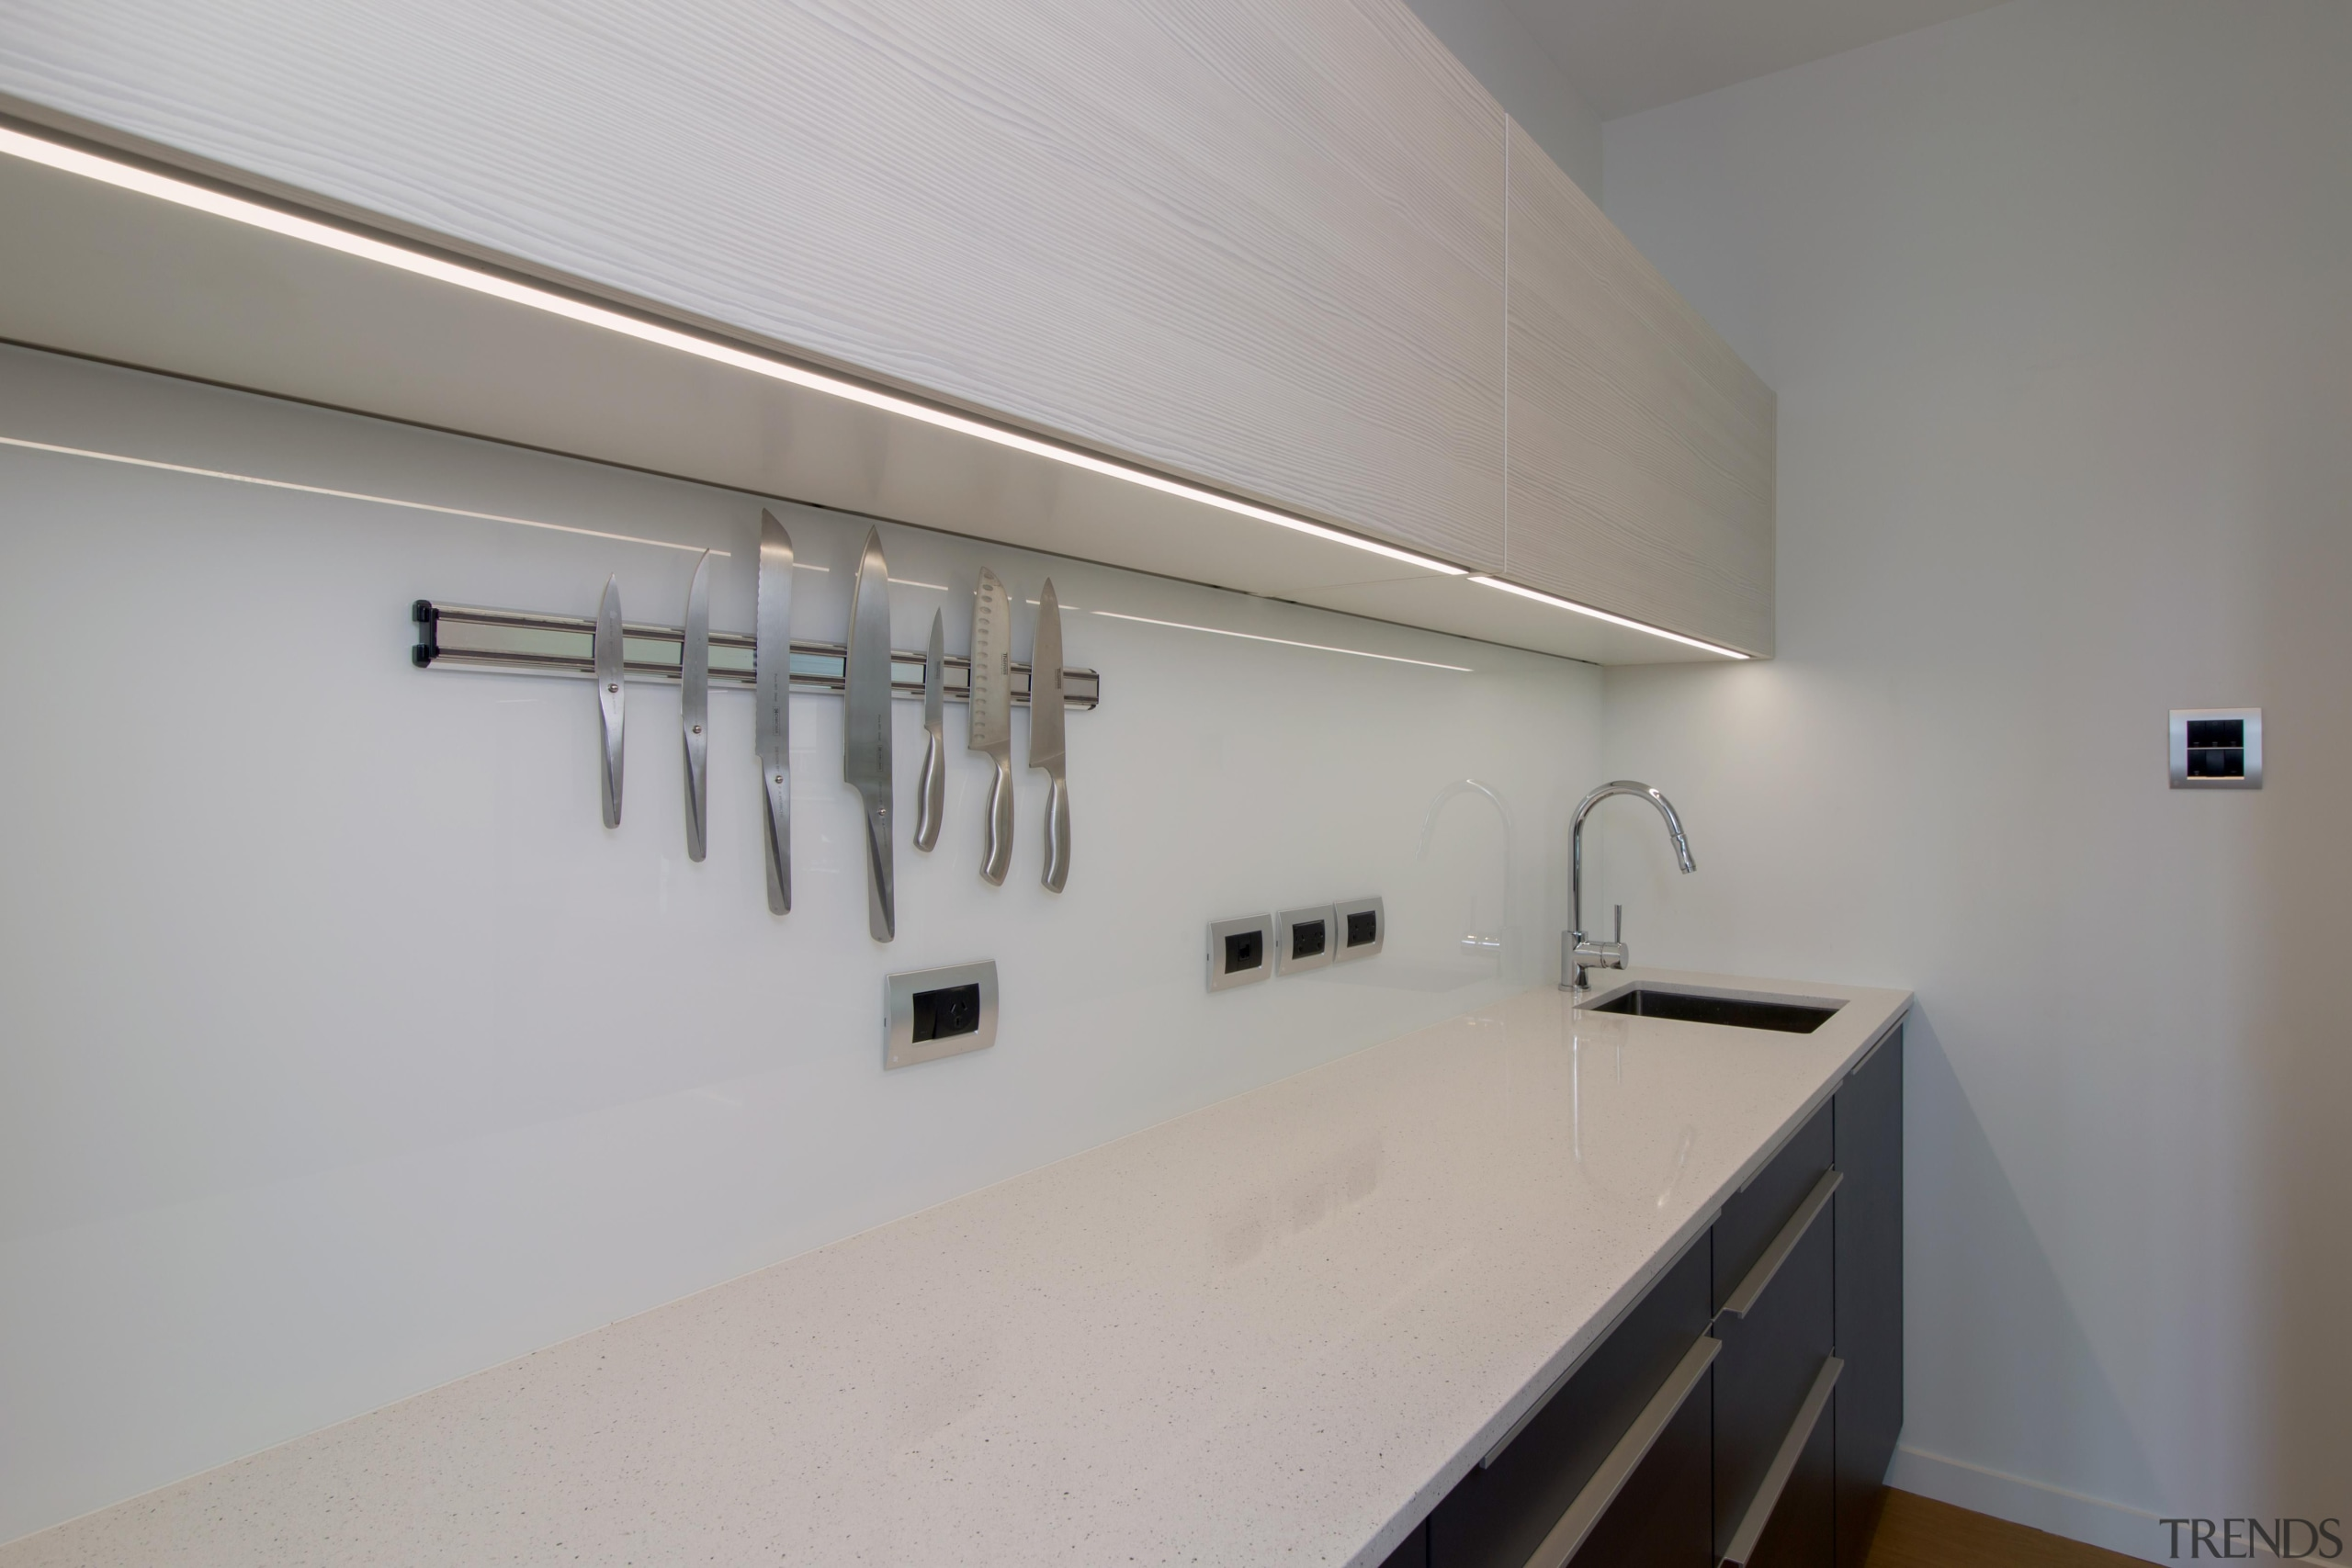 img5505.jpg - img5505.jpg - architecture | countertop | architecture, countertop, daylighting, floor, home, house, interior design, kitchen, loft, property, real estate, room, gray